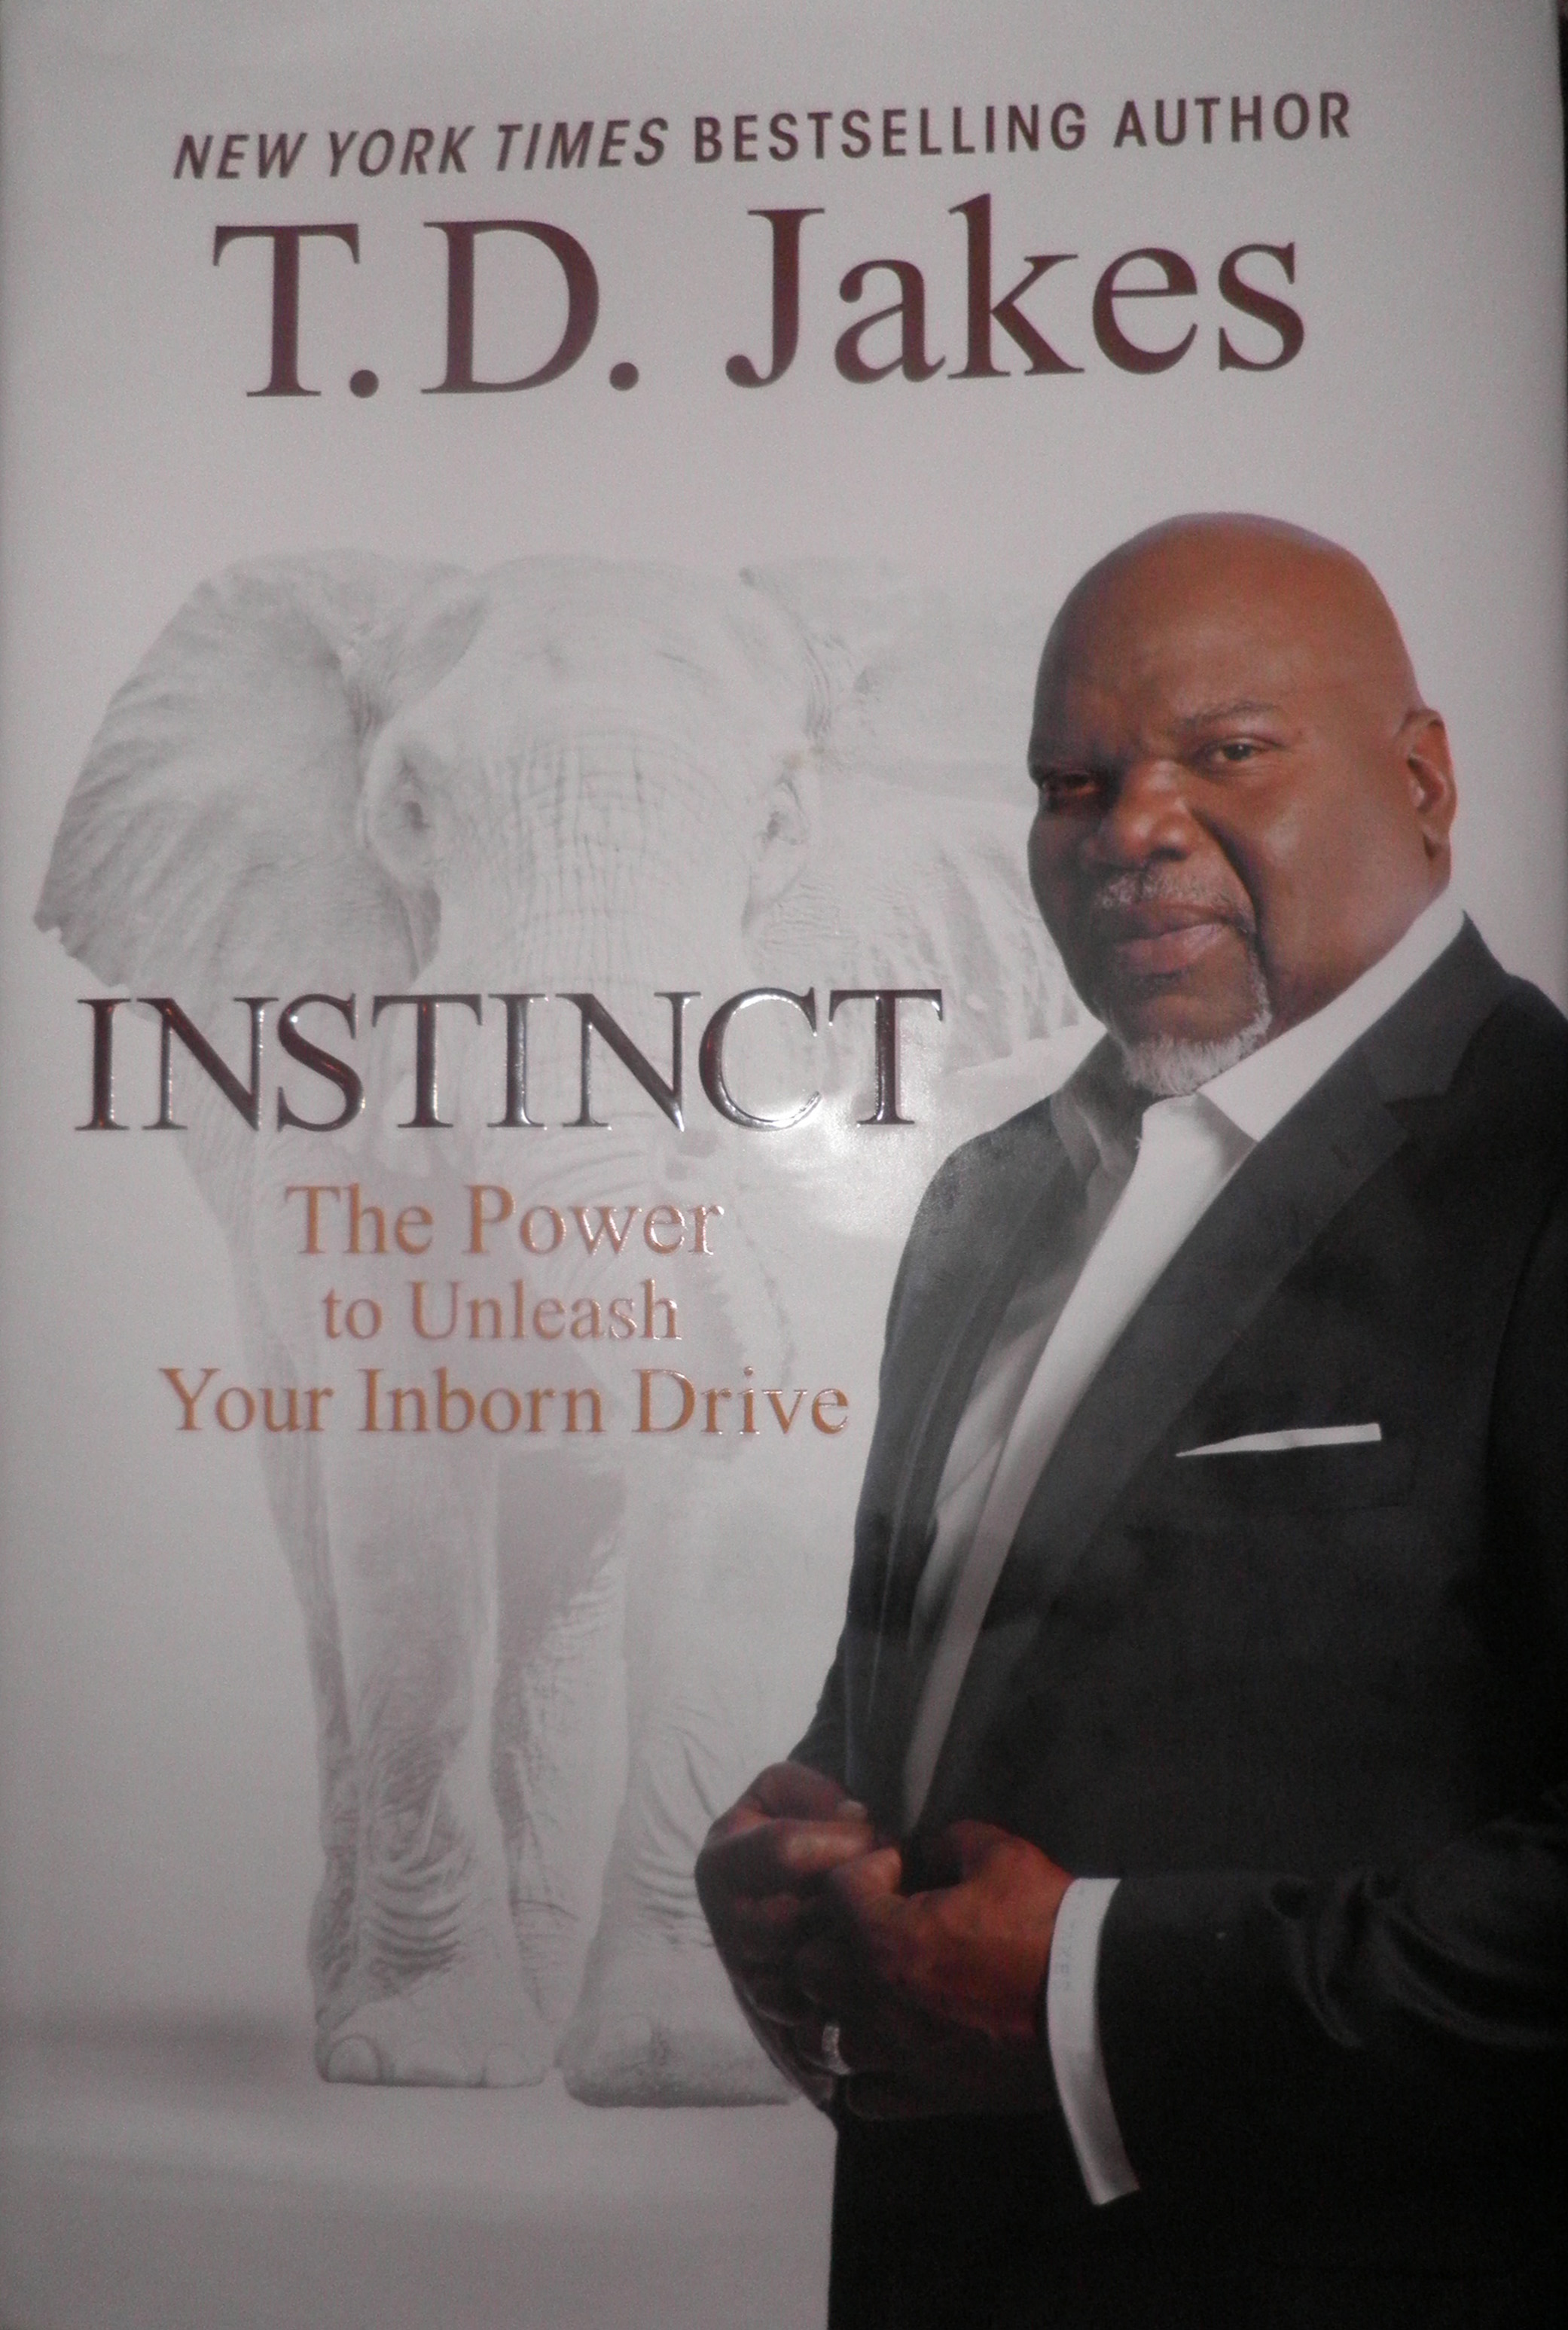 LIVING BY INSTINCT: T D  JAKES ANSWERS THE QUESTION – CAN